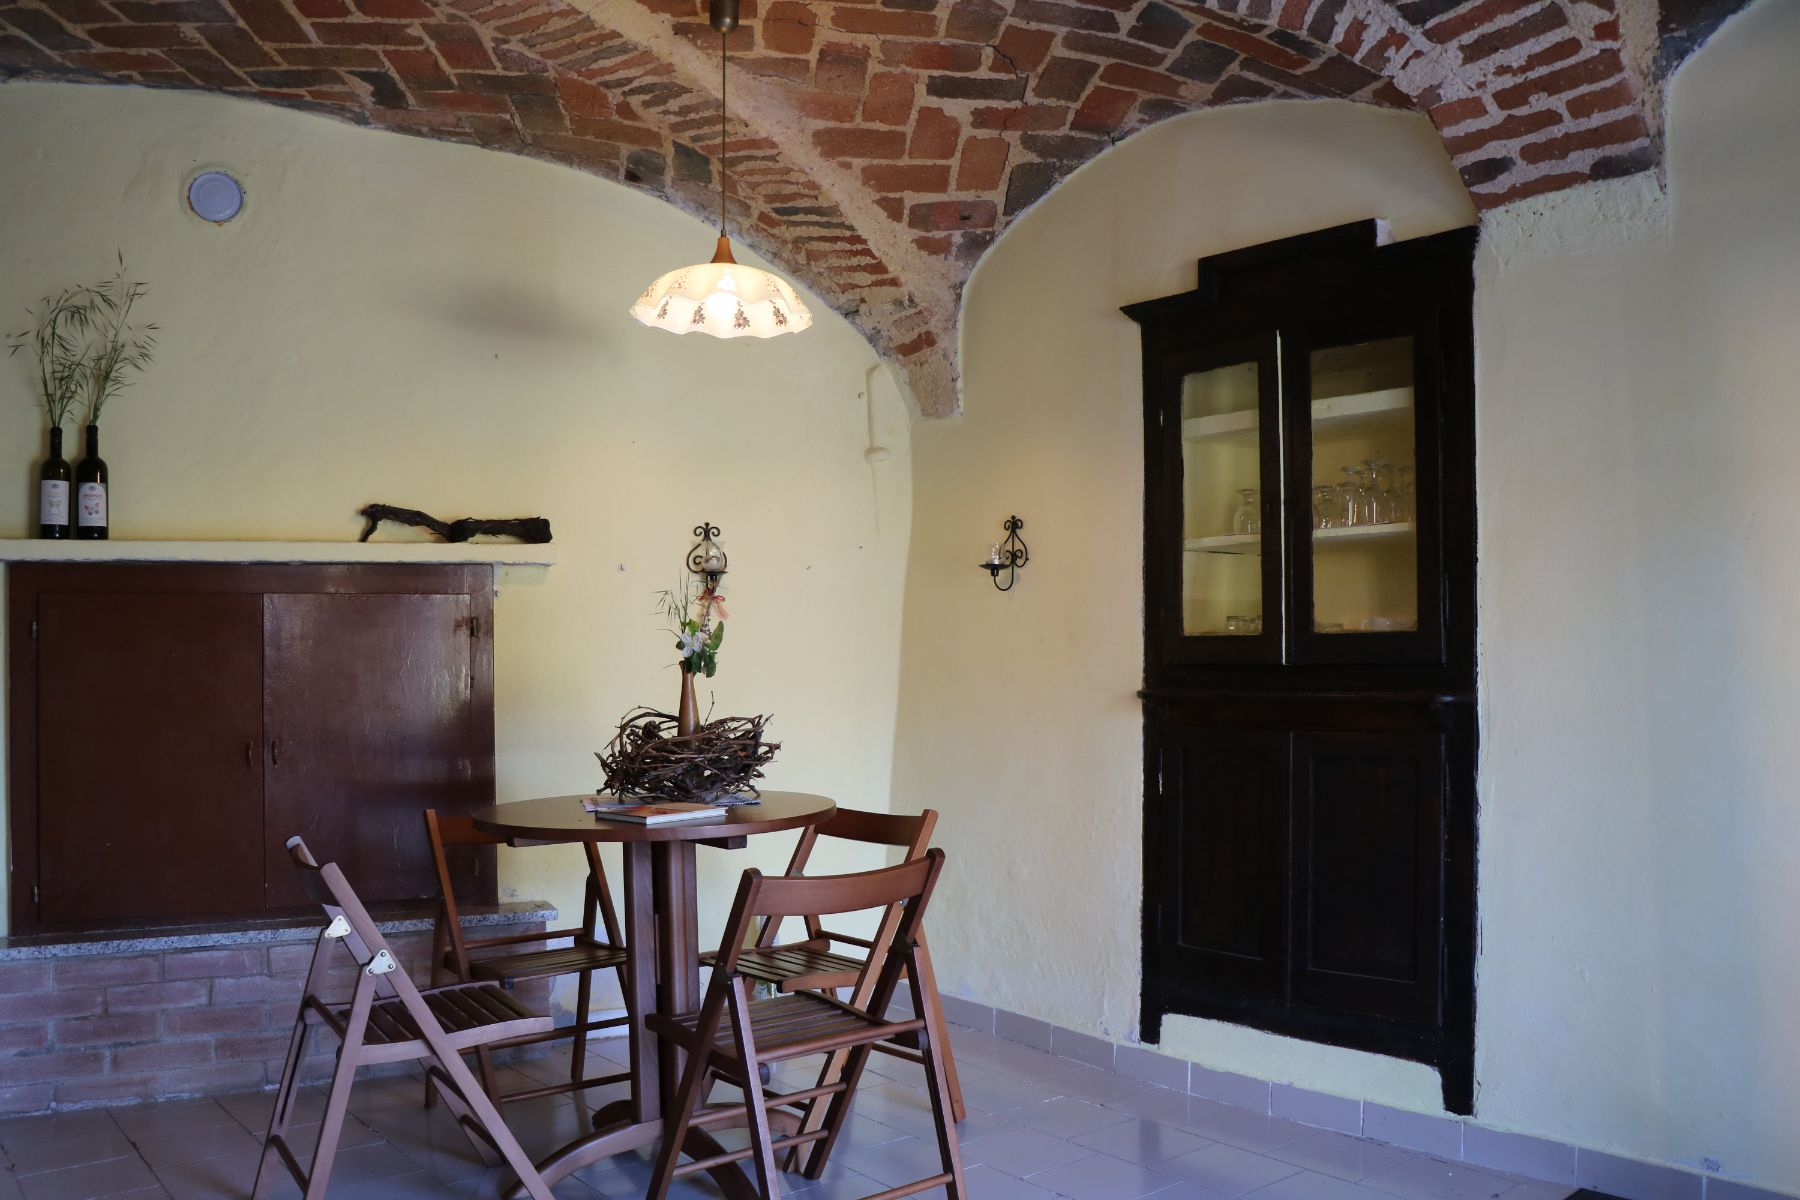 Casa Re, Piemonte - Apartment Kneipp  | Apartment Kneipp | Appartamento Kneipp